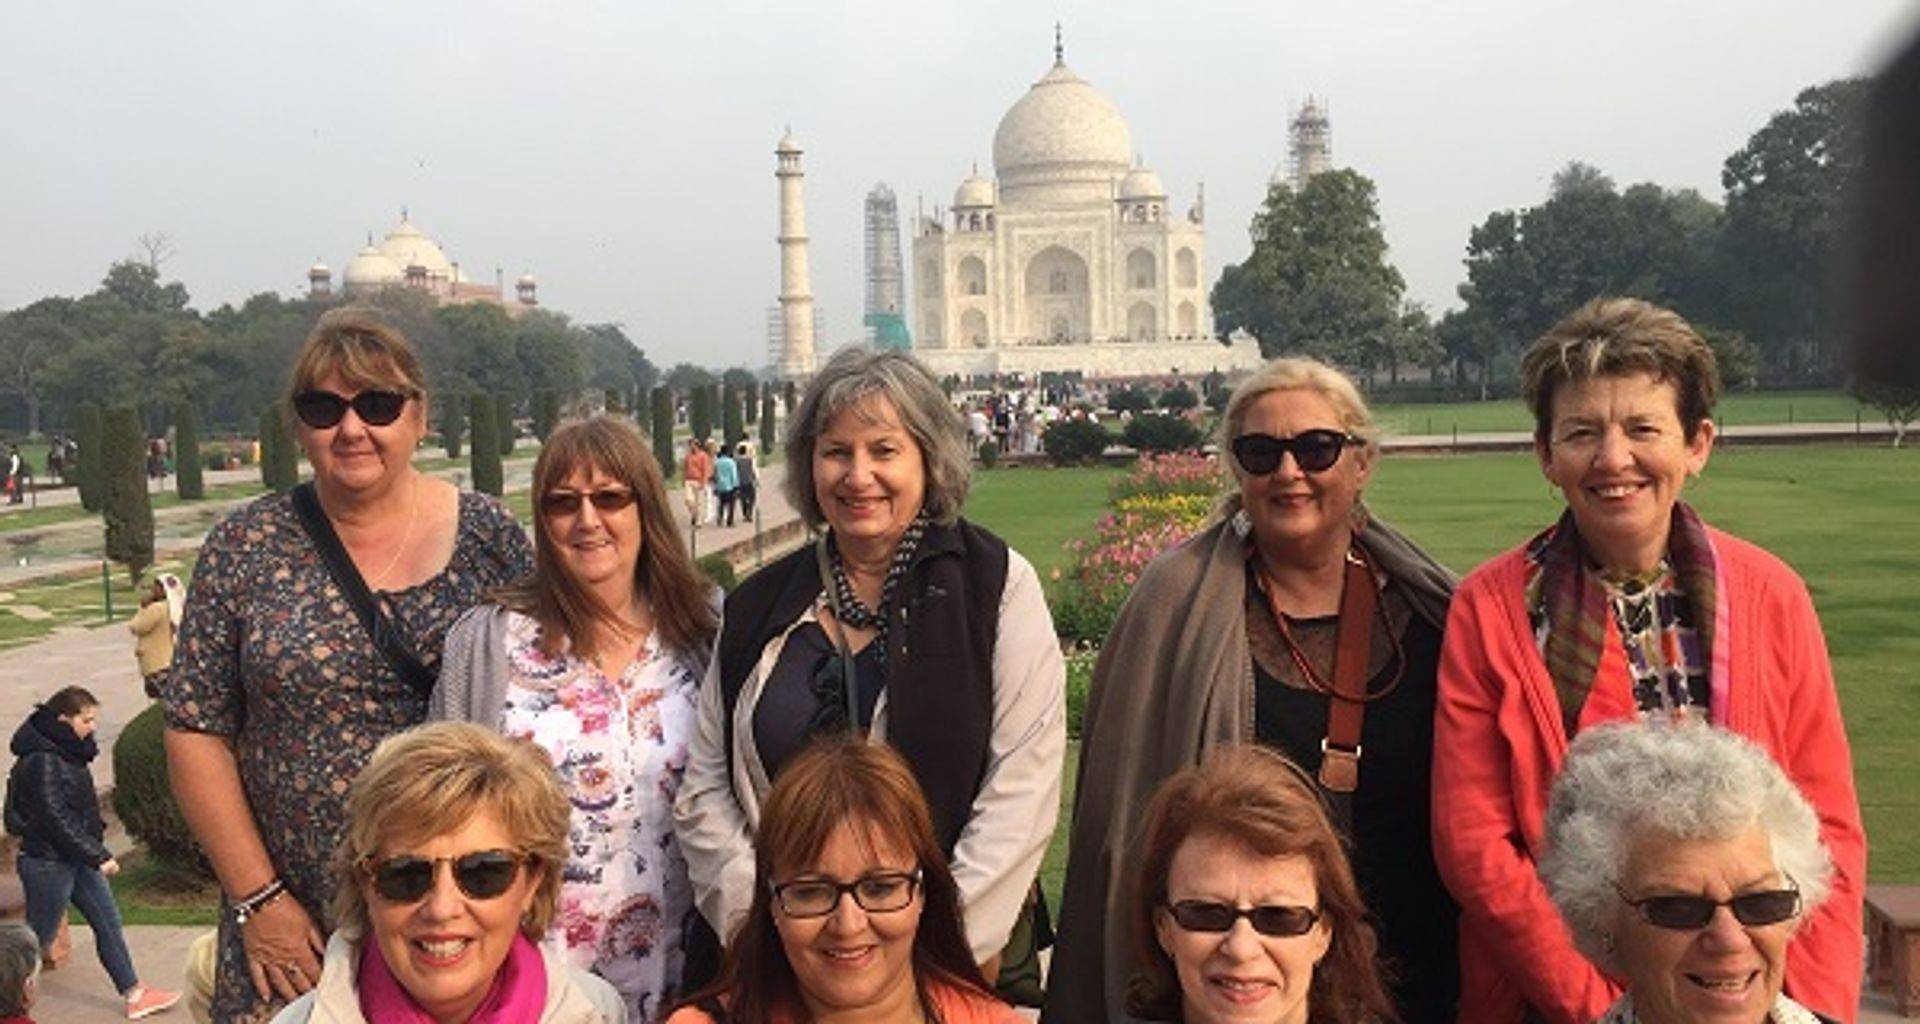 "<img src=""australian womens travel.jpg alt=womens tours, tour group sitting on bench in front of the taj mahal, agra, india"">"